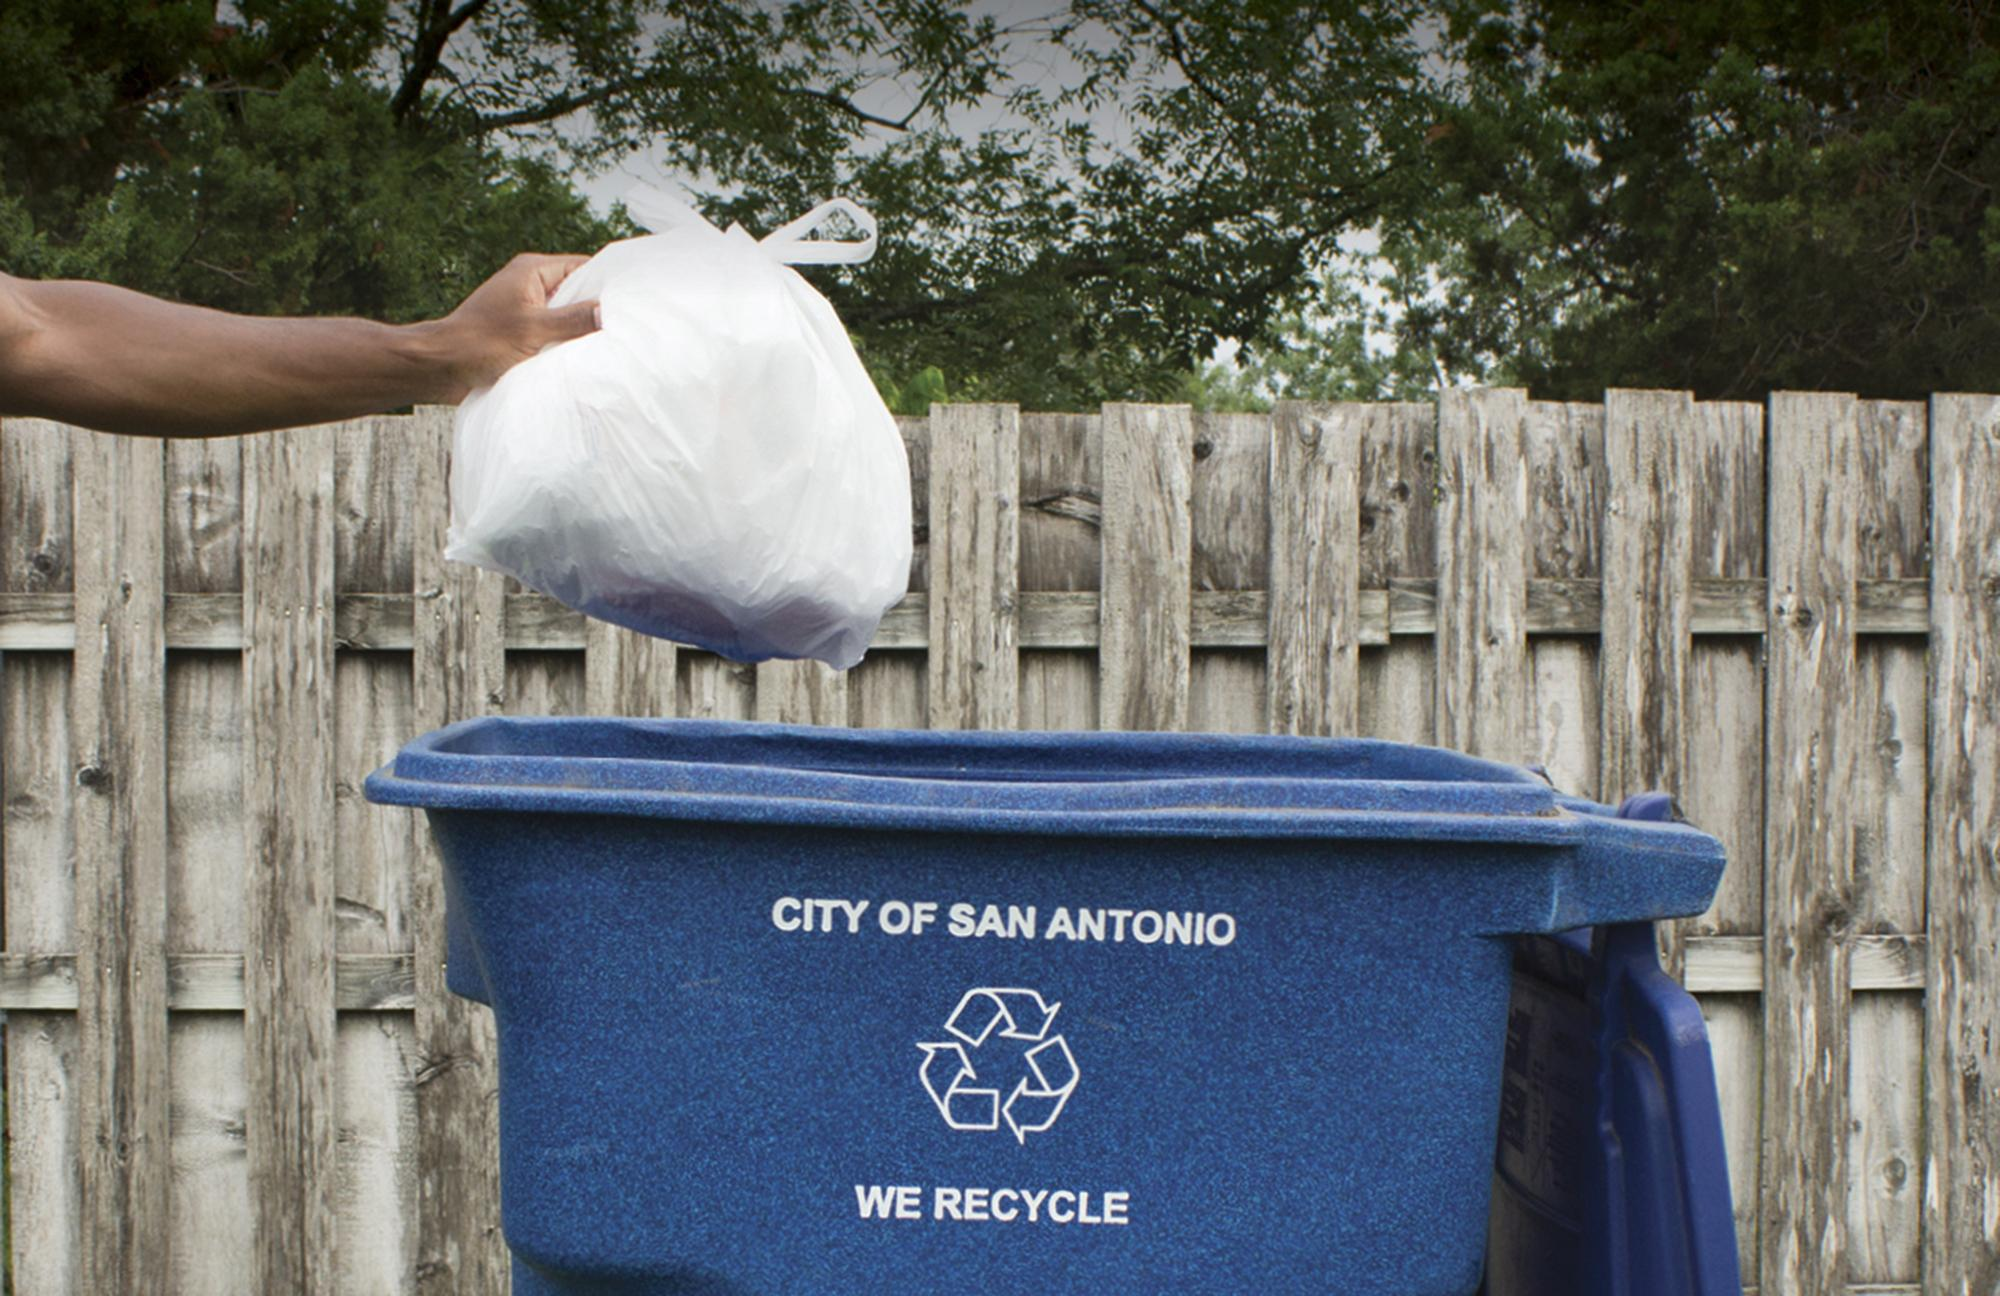 plastic bag recycling plunges in s.a. - san antonio express-news